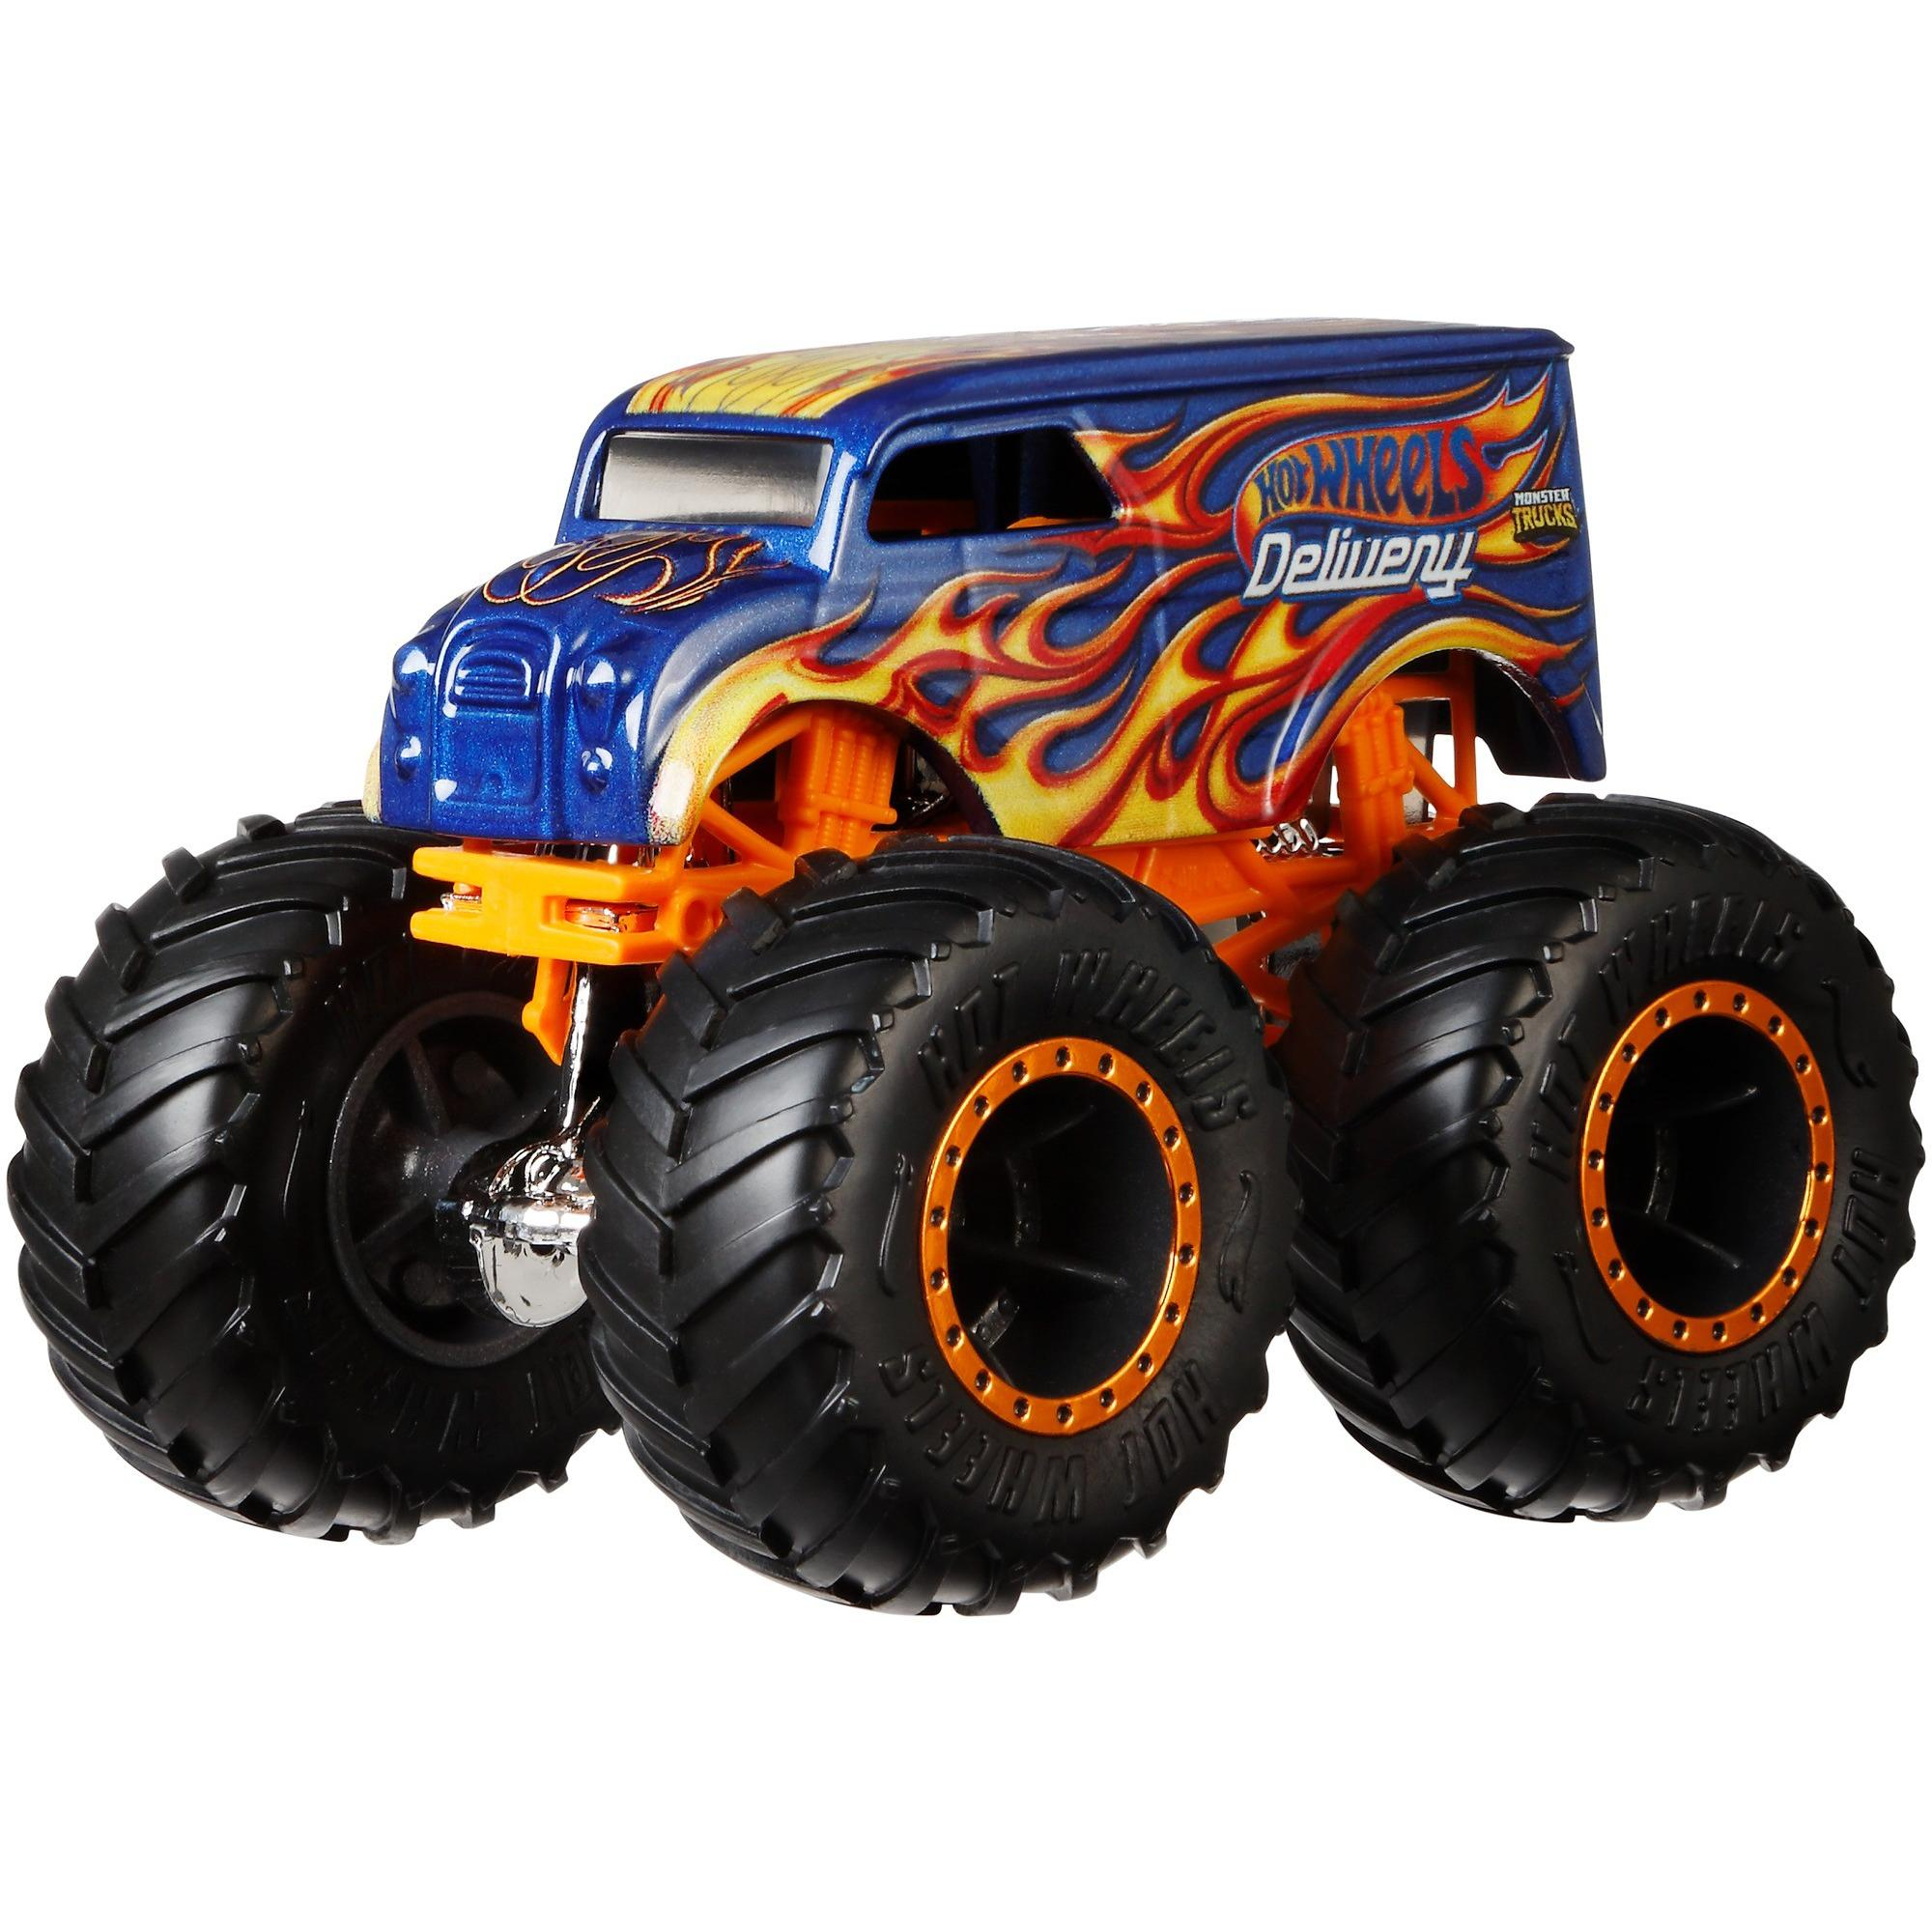 Hot Wheels Monster Trucks 1:64 Scale Die-Cast Vehicle (Styles May Vary) by Mattel